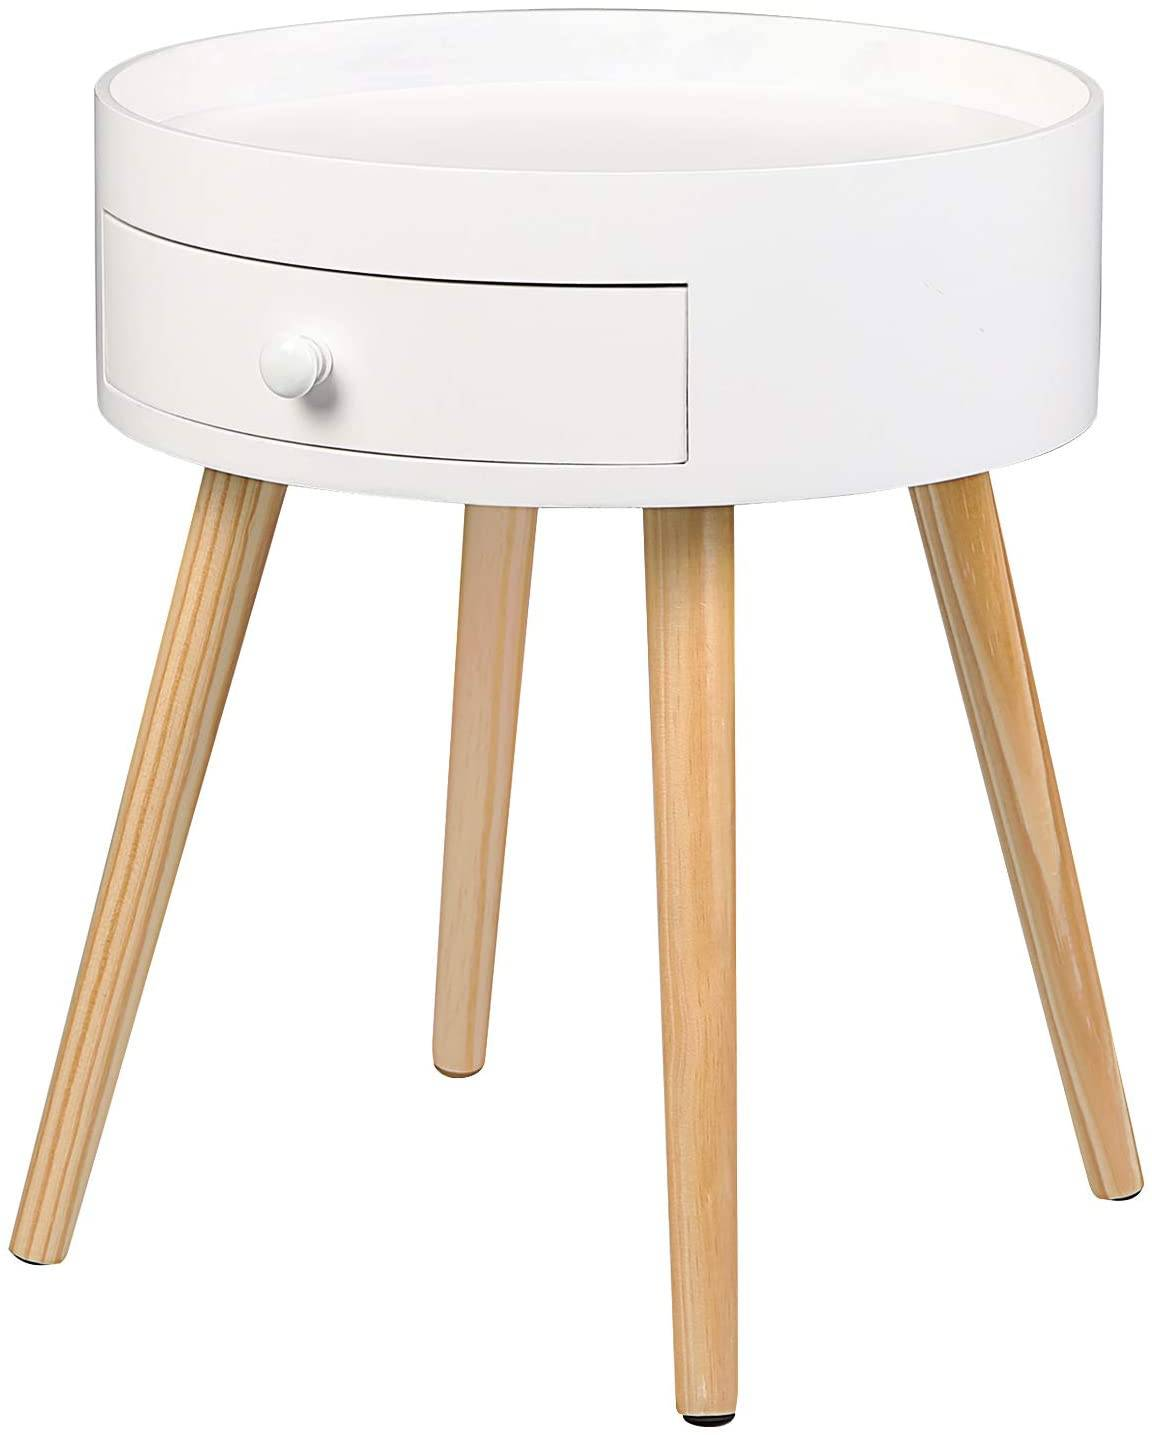 Nachtschrank Modern Bedside Table With Drawer, White | Woltu.eu